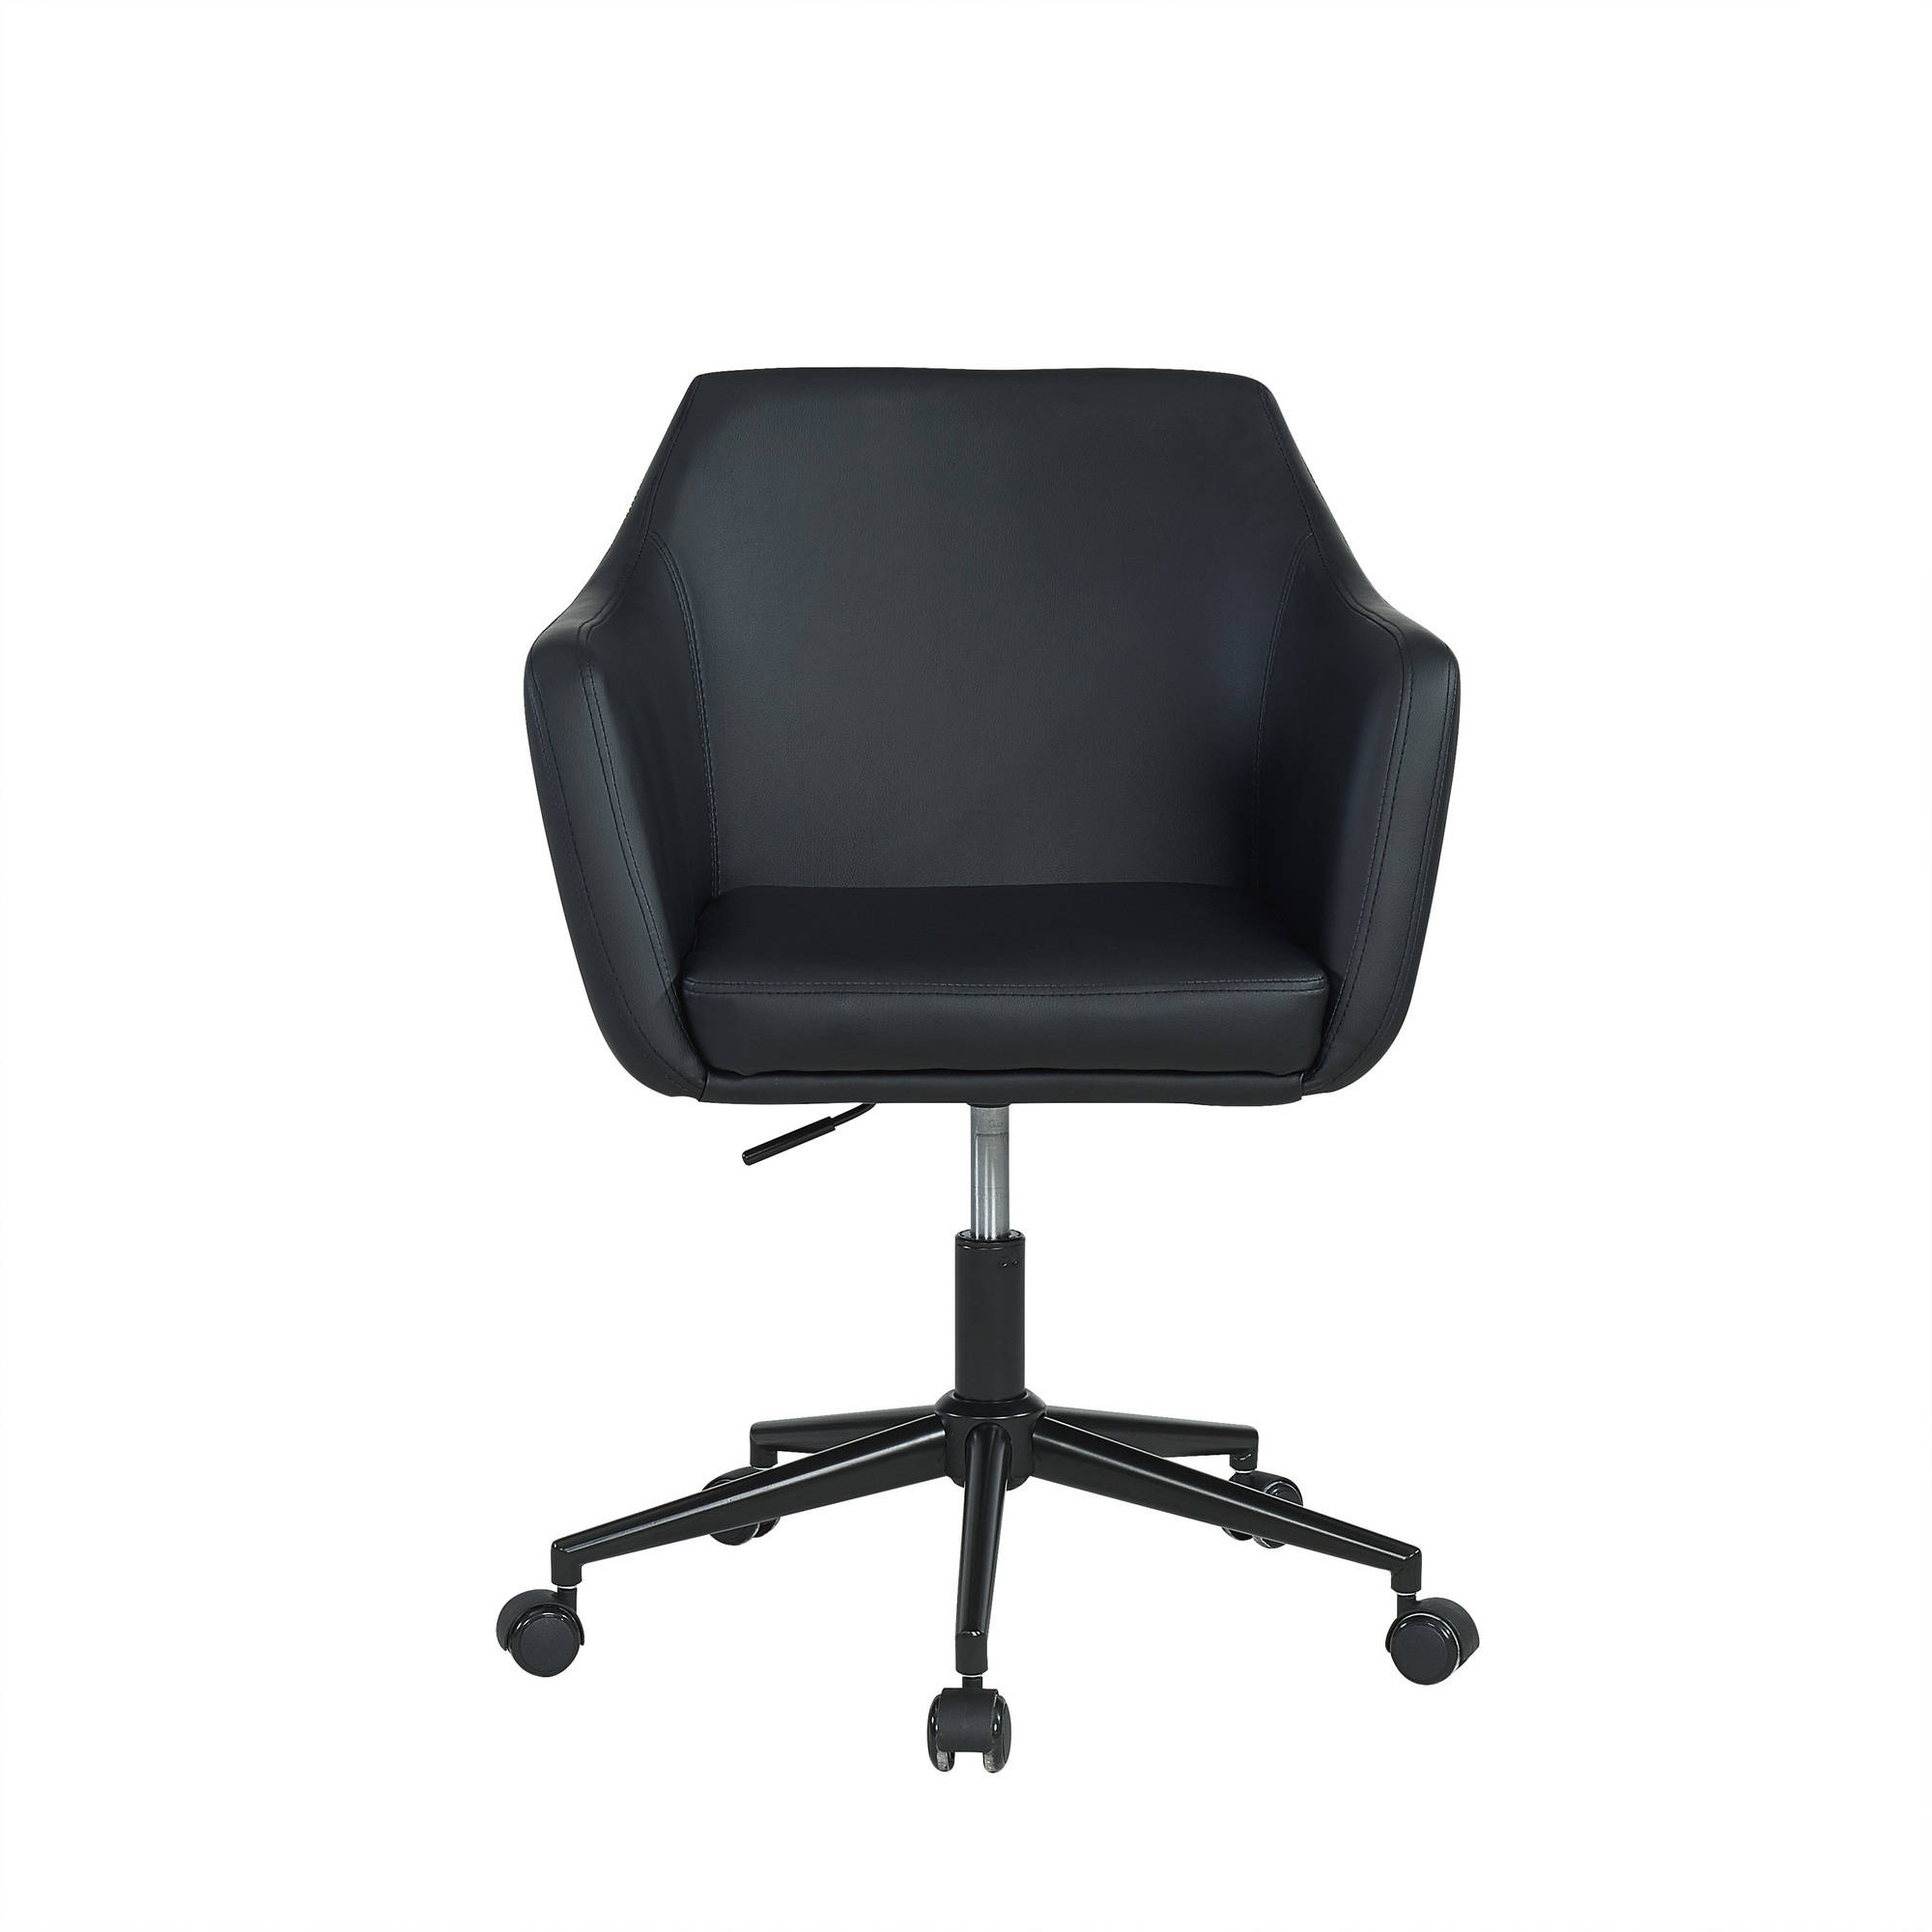 Attractive Mainstays Faux Leather Office Chair, Multiple Colors   Walmart.com